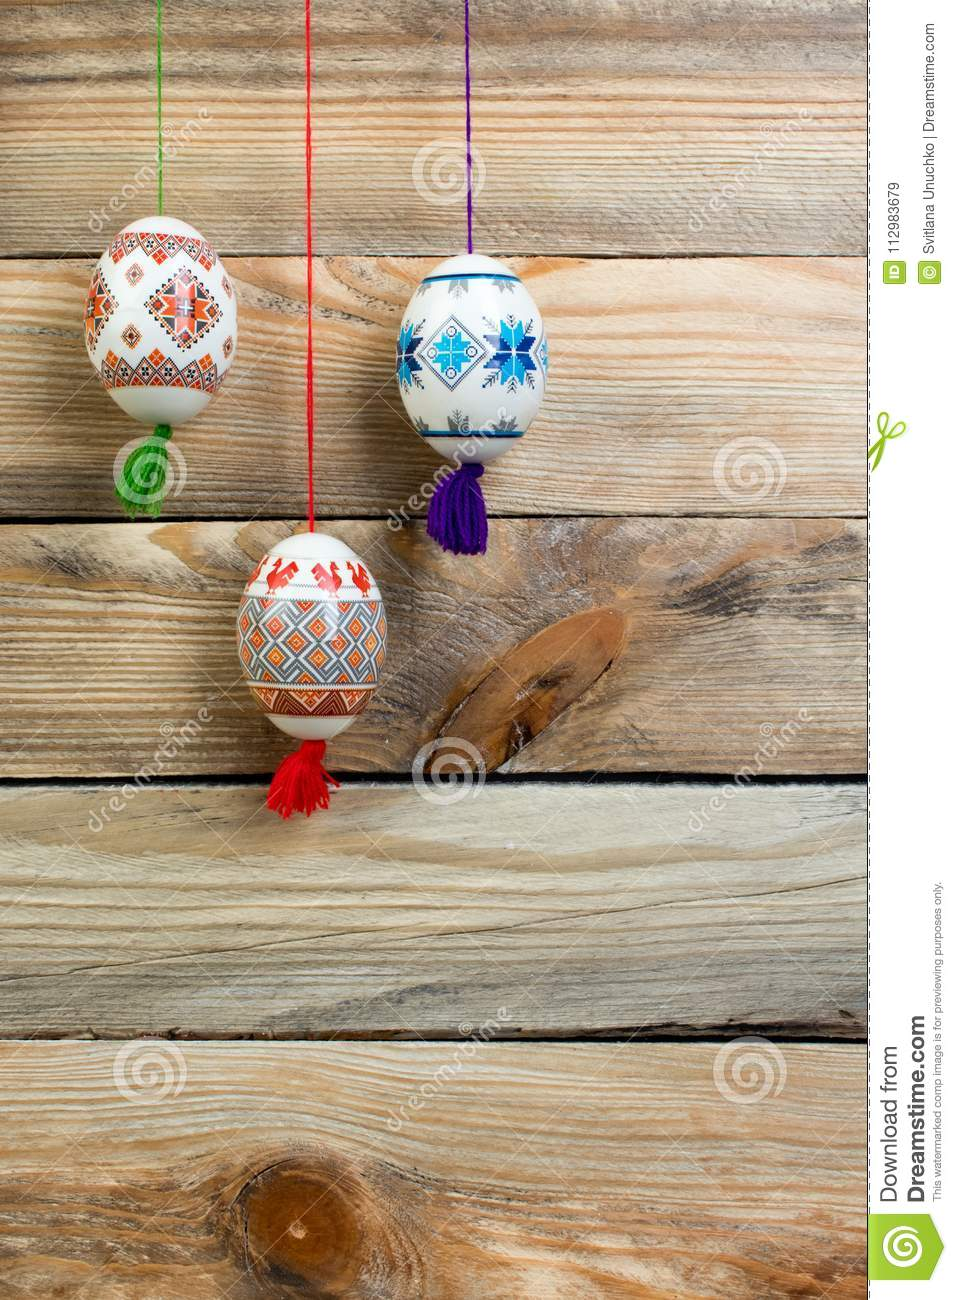 Happy Easter card. Colorful shiny easter eggs on wooden table background. Copy space for text.